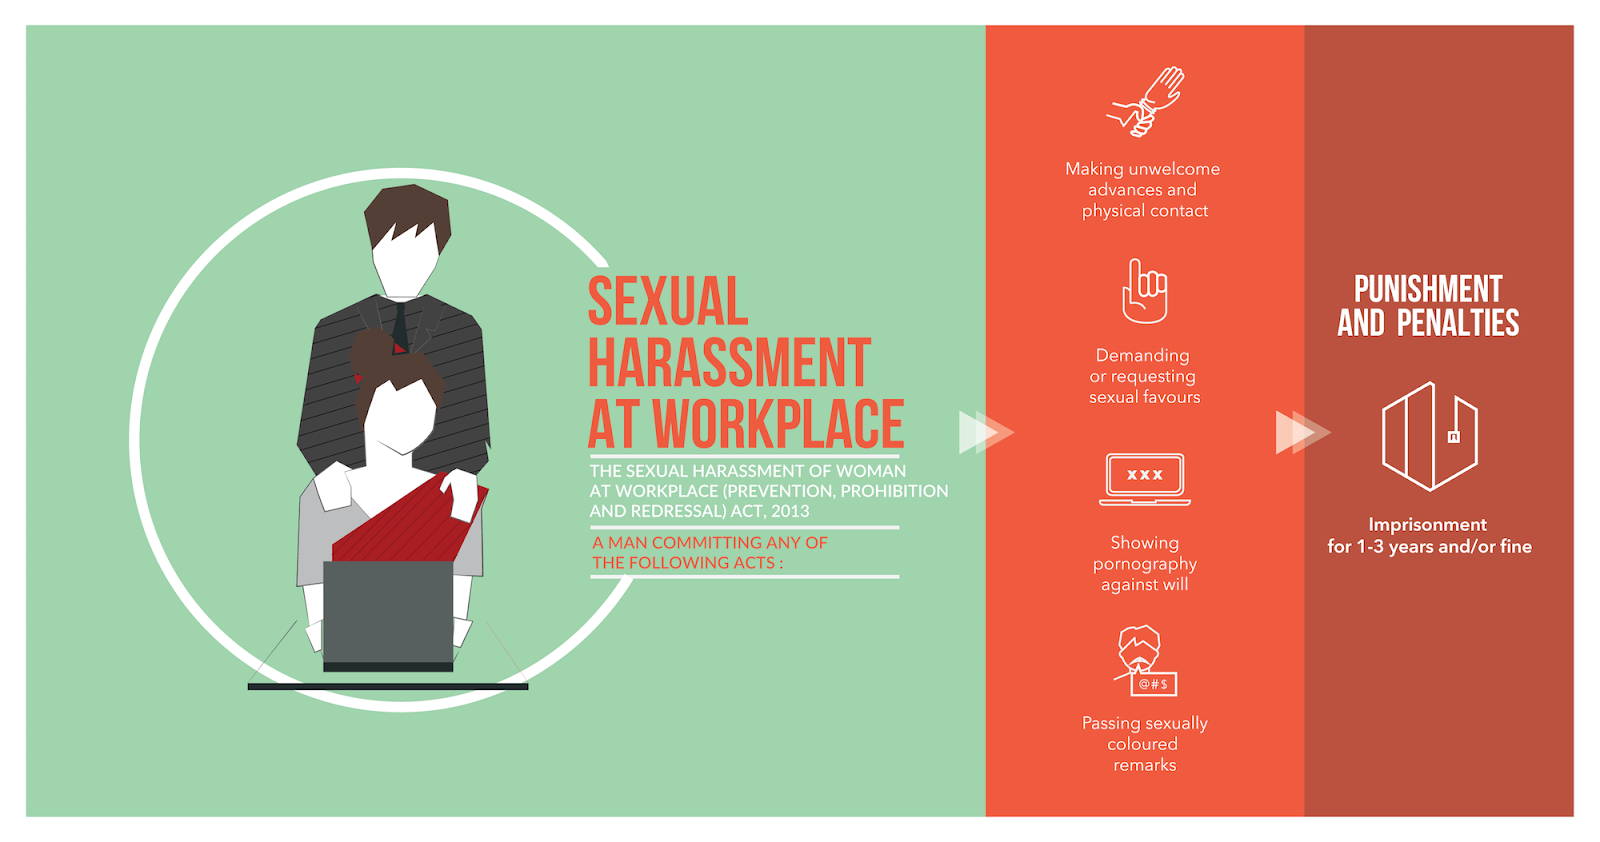 Sexual harassment at workplace images